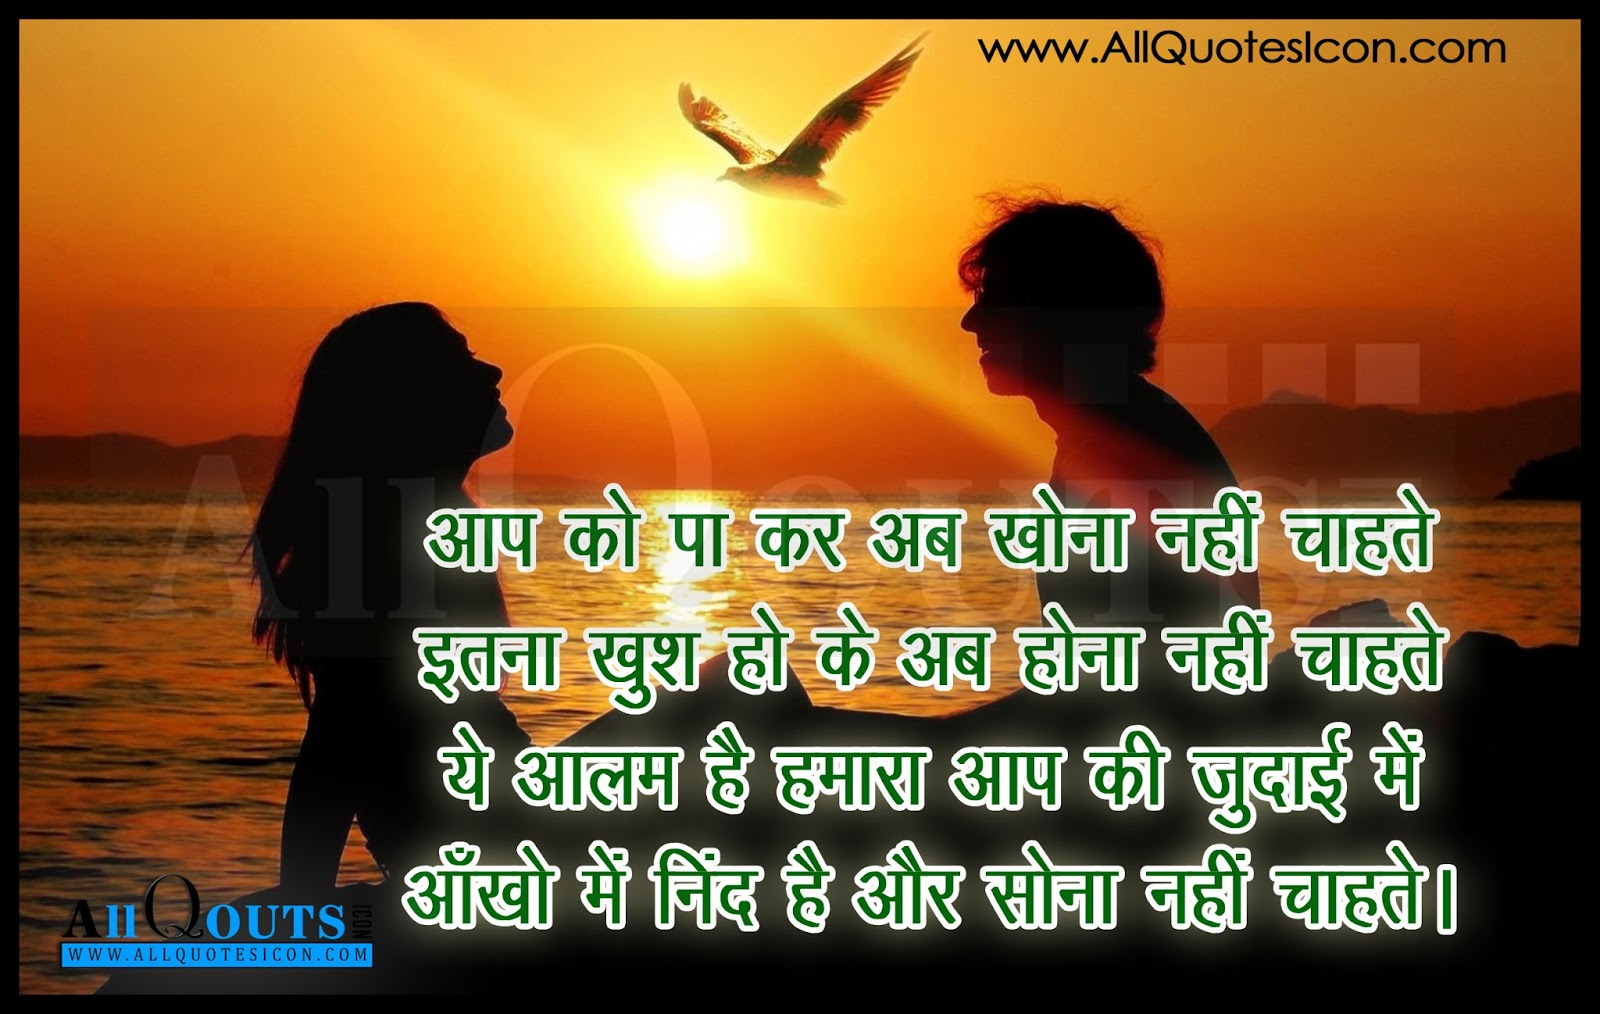 Love Wallpapers Thoughts : Lovers Quotes and Thoughts in Hindi www.AllQuotesIcon.com Telugu Quotes Tamil Quotes ...